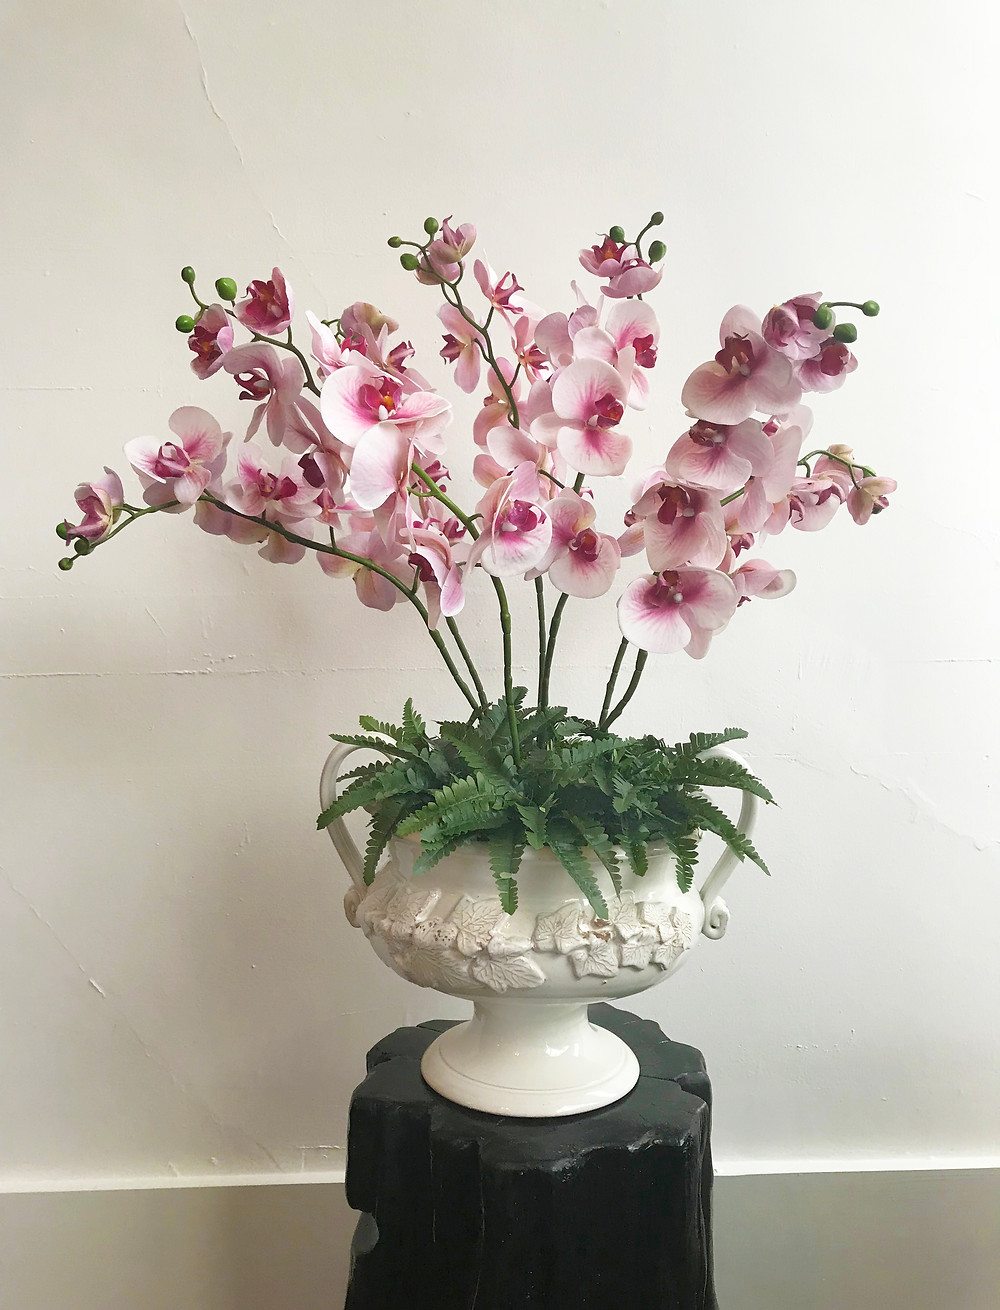 picture of a hand-crafted DIY faux-flower arrangement with orchids